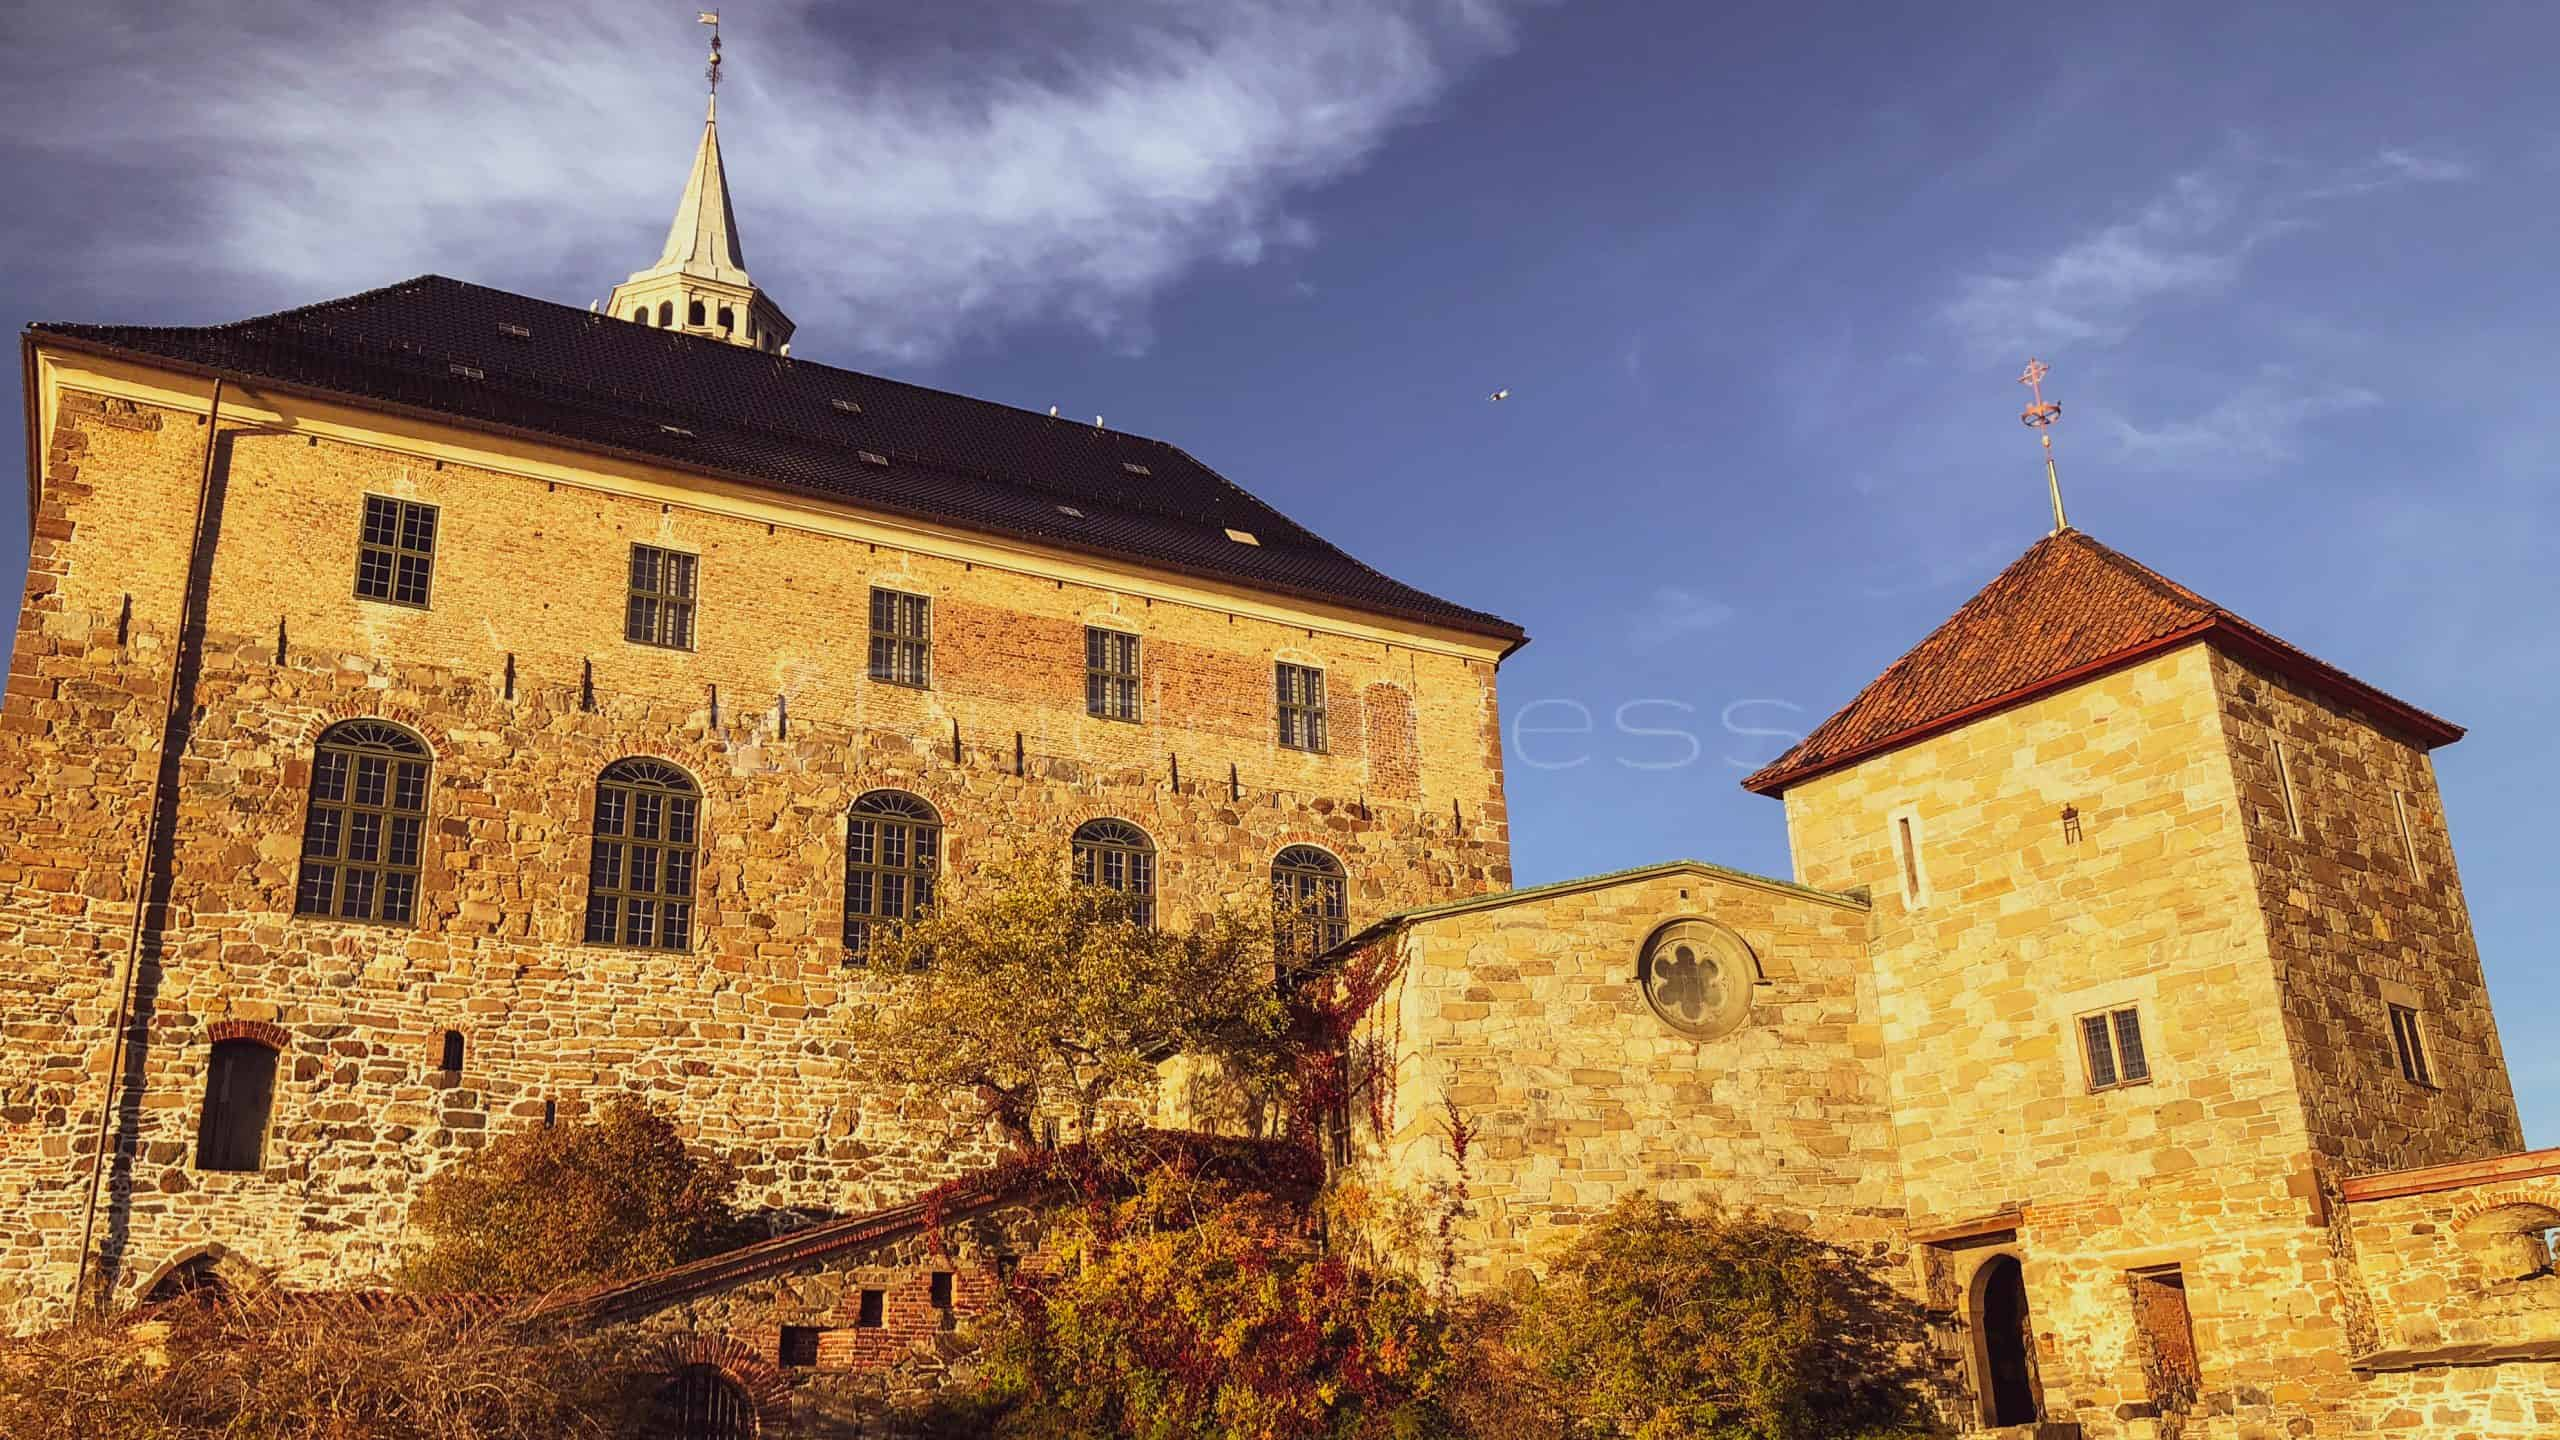 things to do in oslo - Akershus Fortress